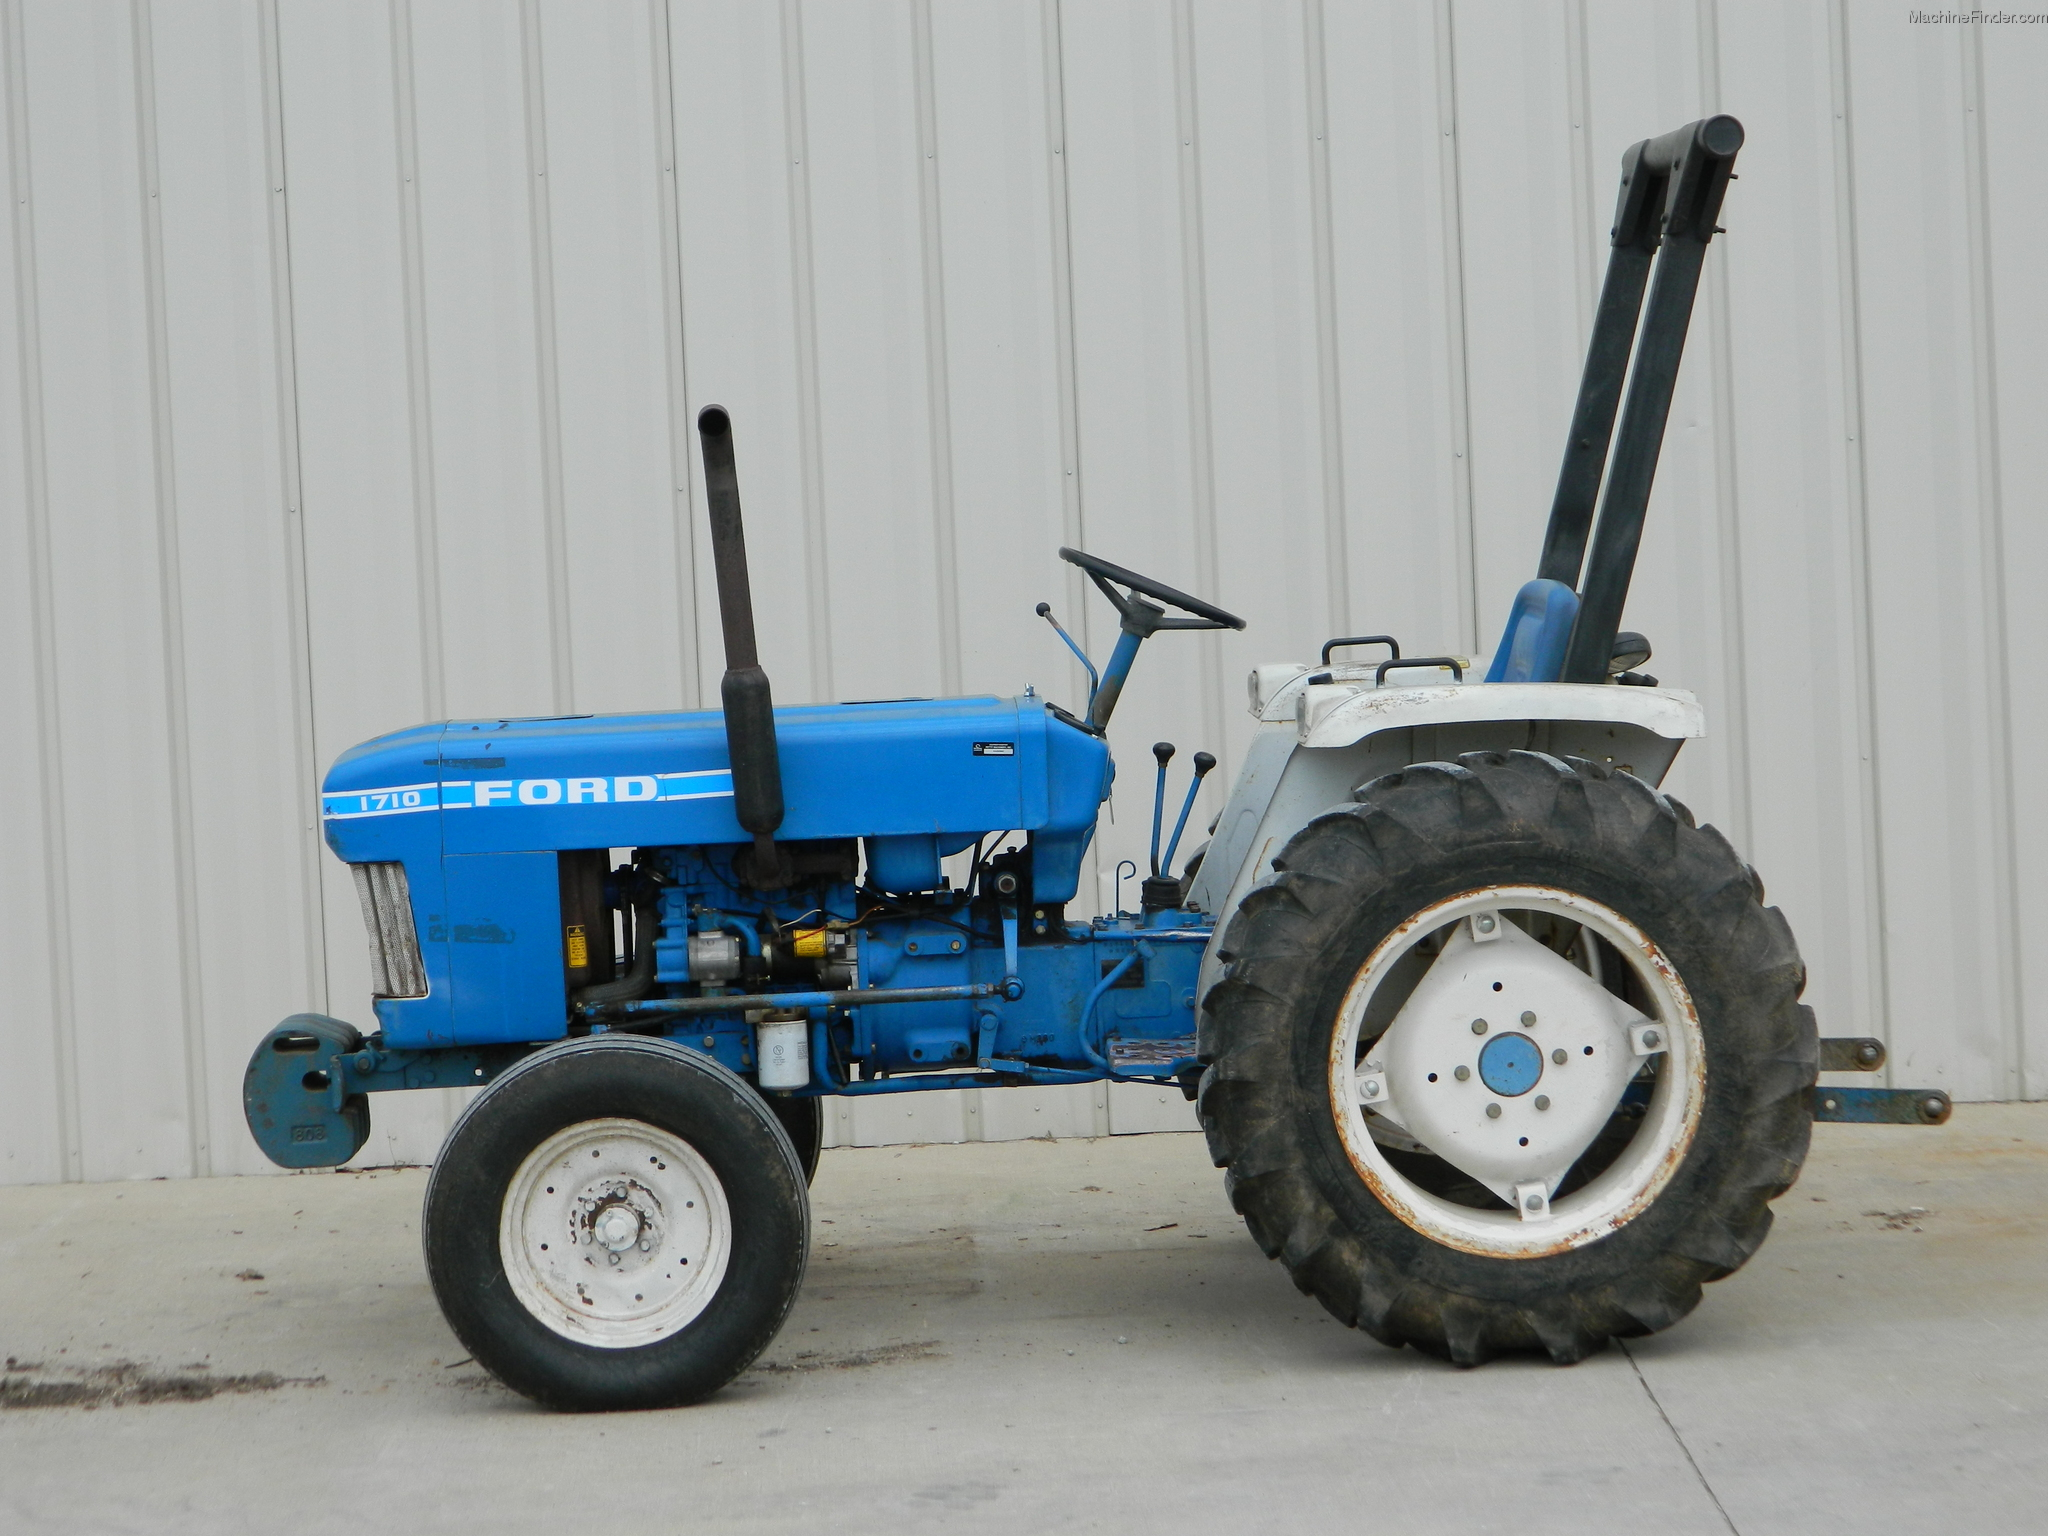 Ford 1710 Tractor Parts Breakdown : Ford tractor engine bing images